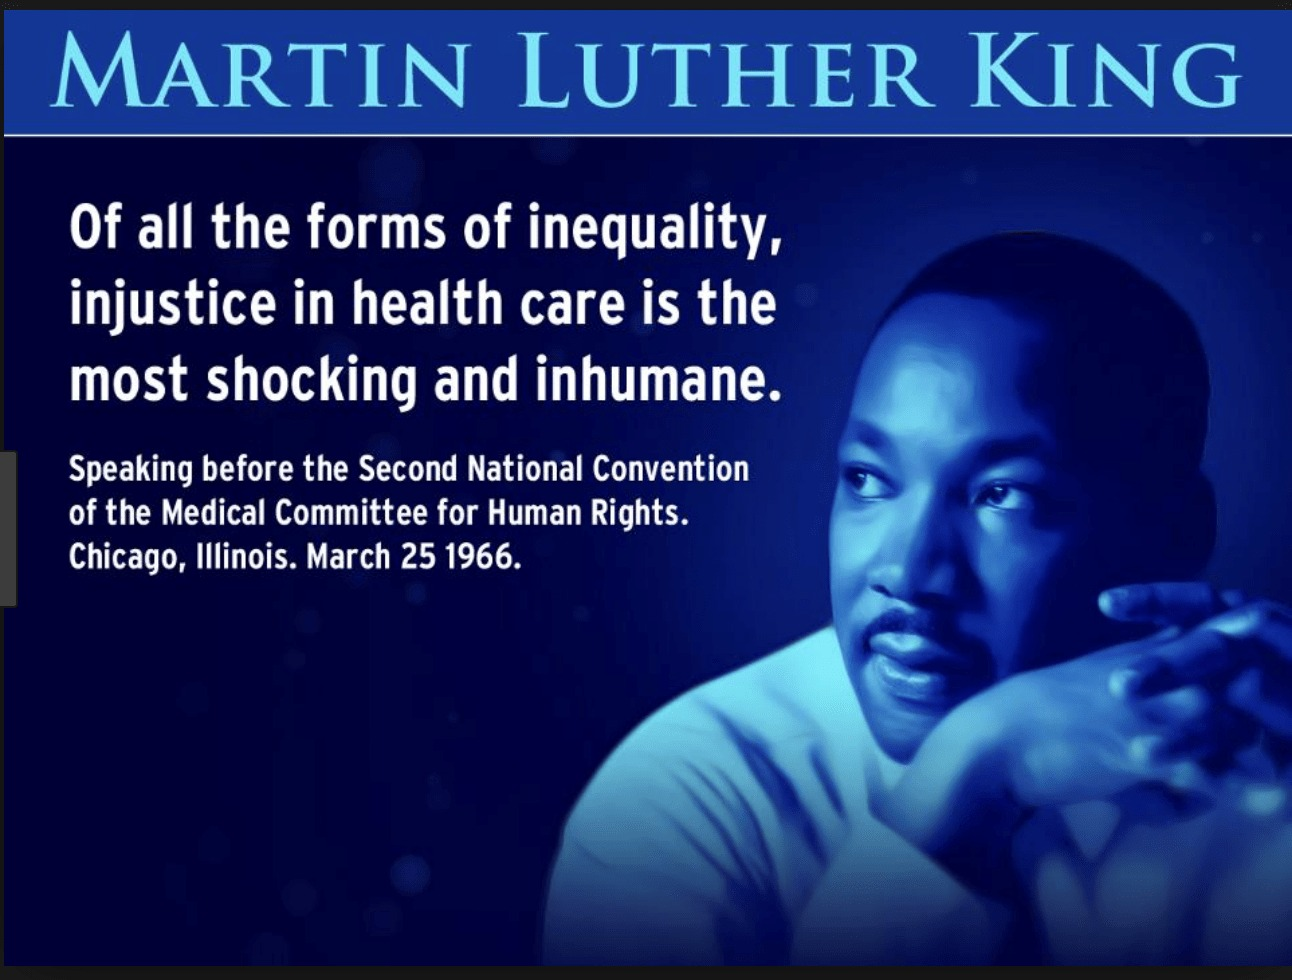 Martin-Luther-King-Of-all-the-forms-of-inequality-injustice-in-health-care-is-the-most-shocking-and-inhumane-1966-meme, 'The most shocking and inhumane', National News & Views